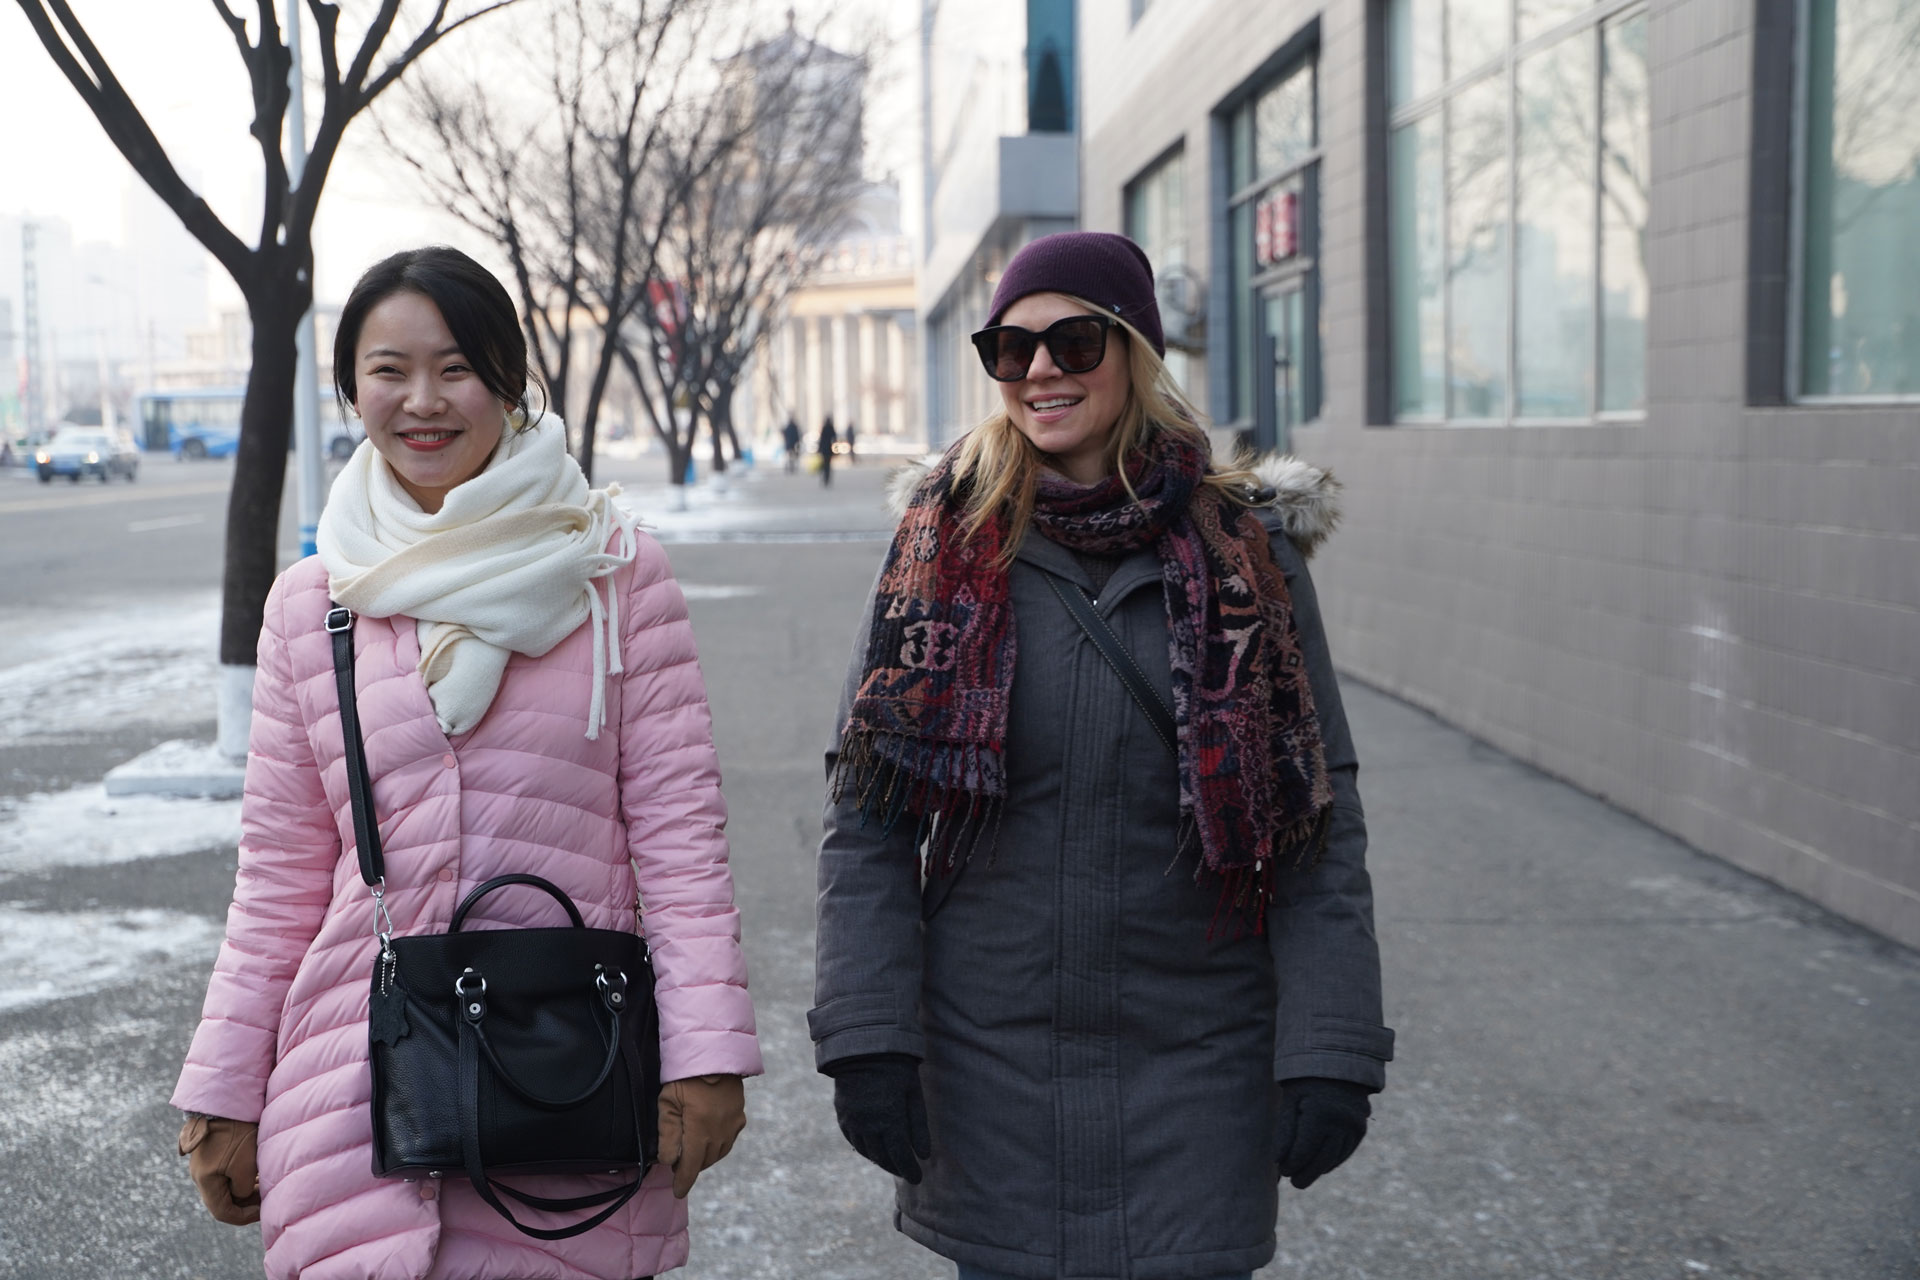 north-korean-tour-guide-with-participant.jpg